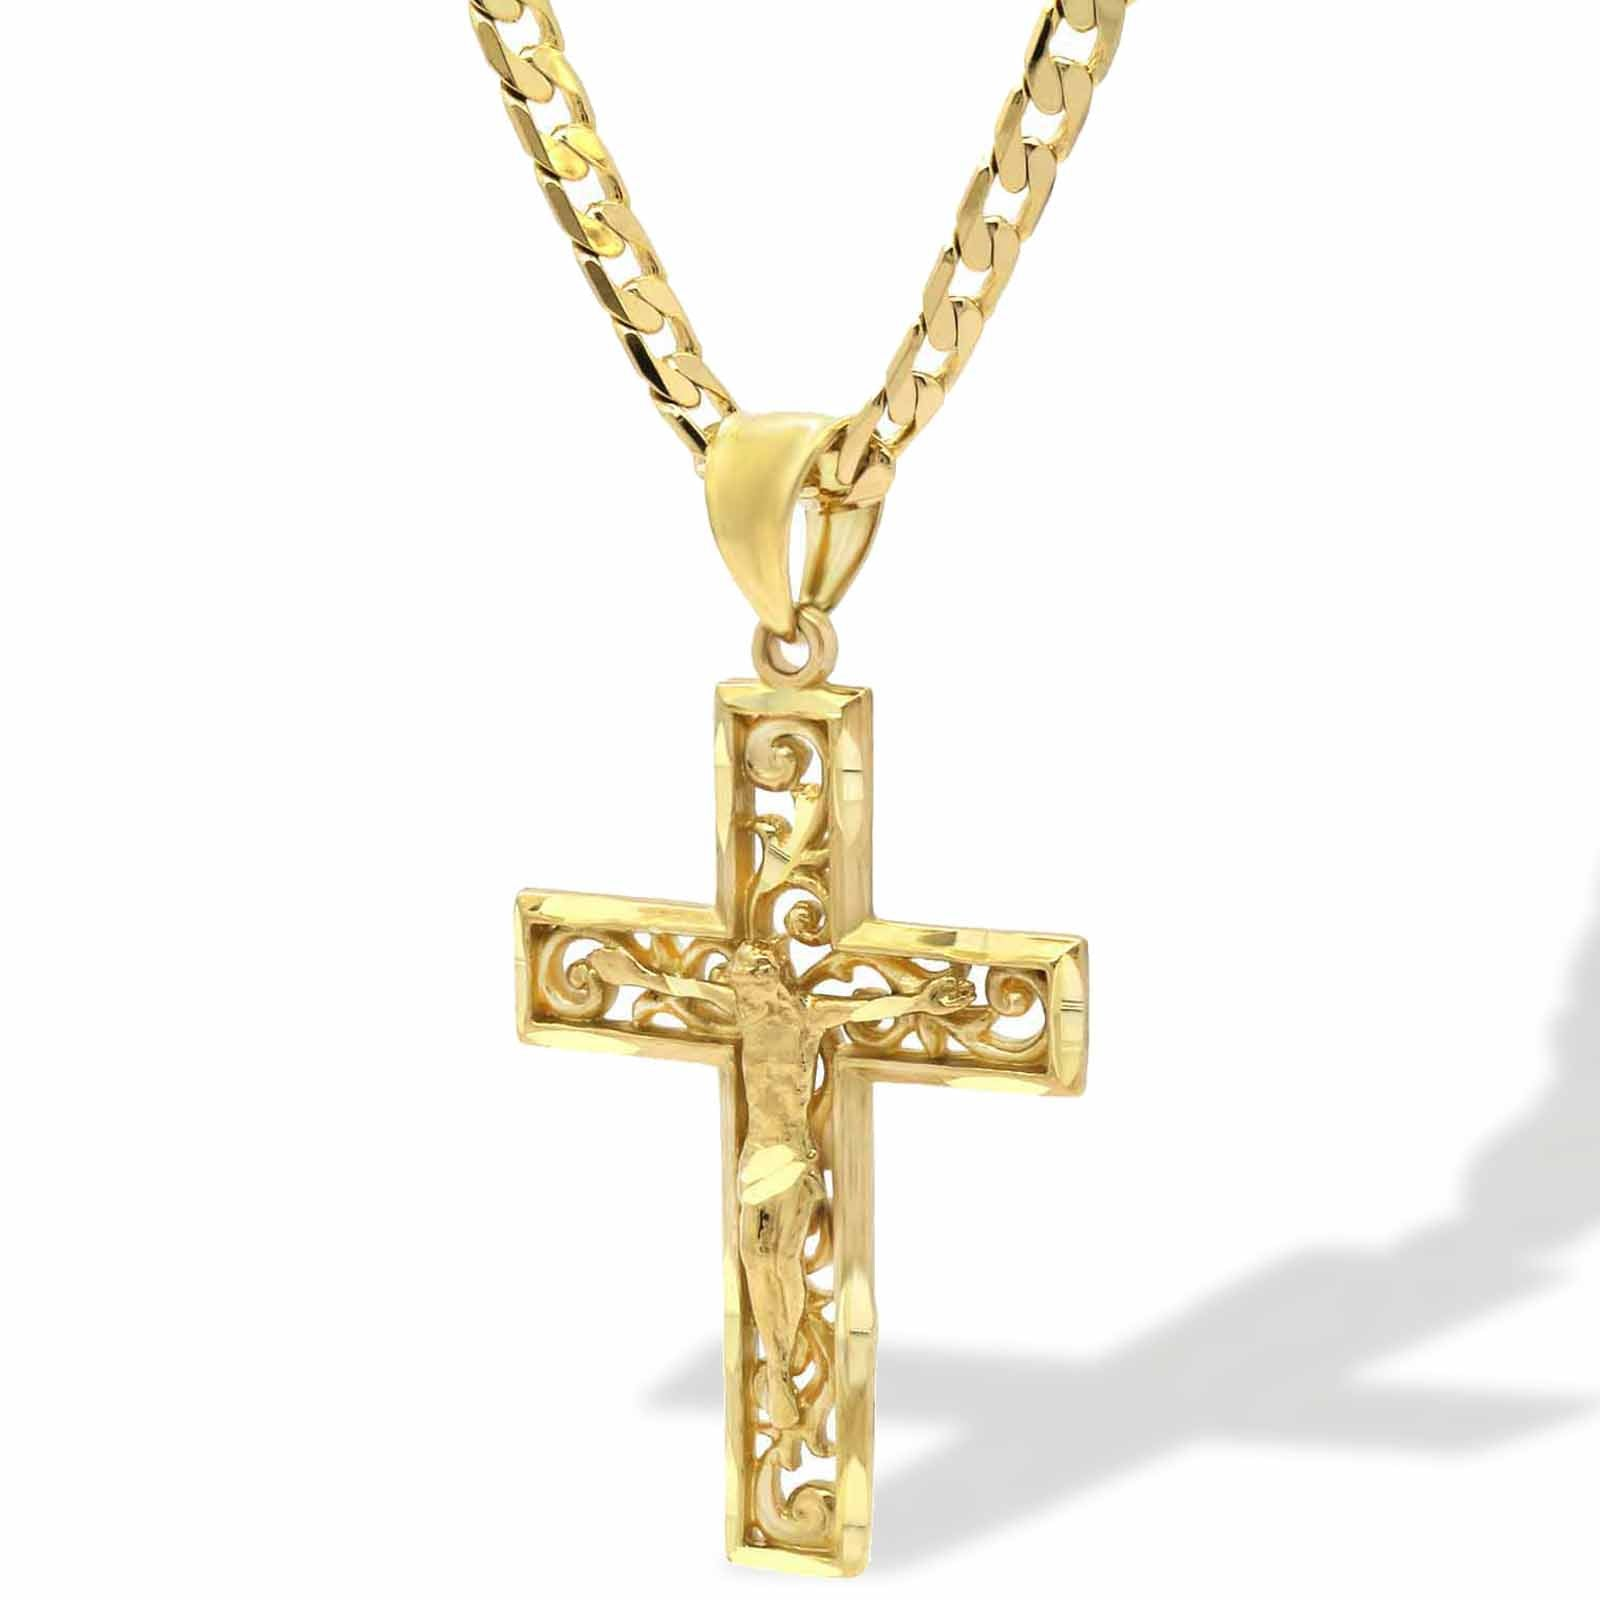 WIRED CROSS CRUCIFIX PENDANT